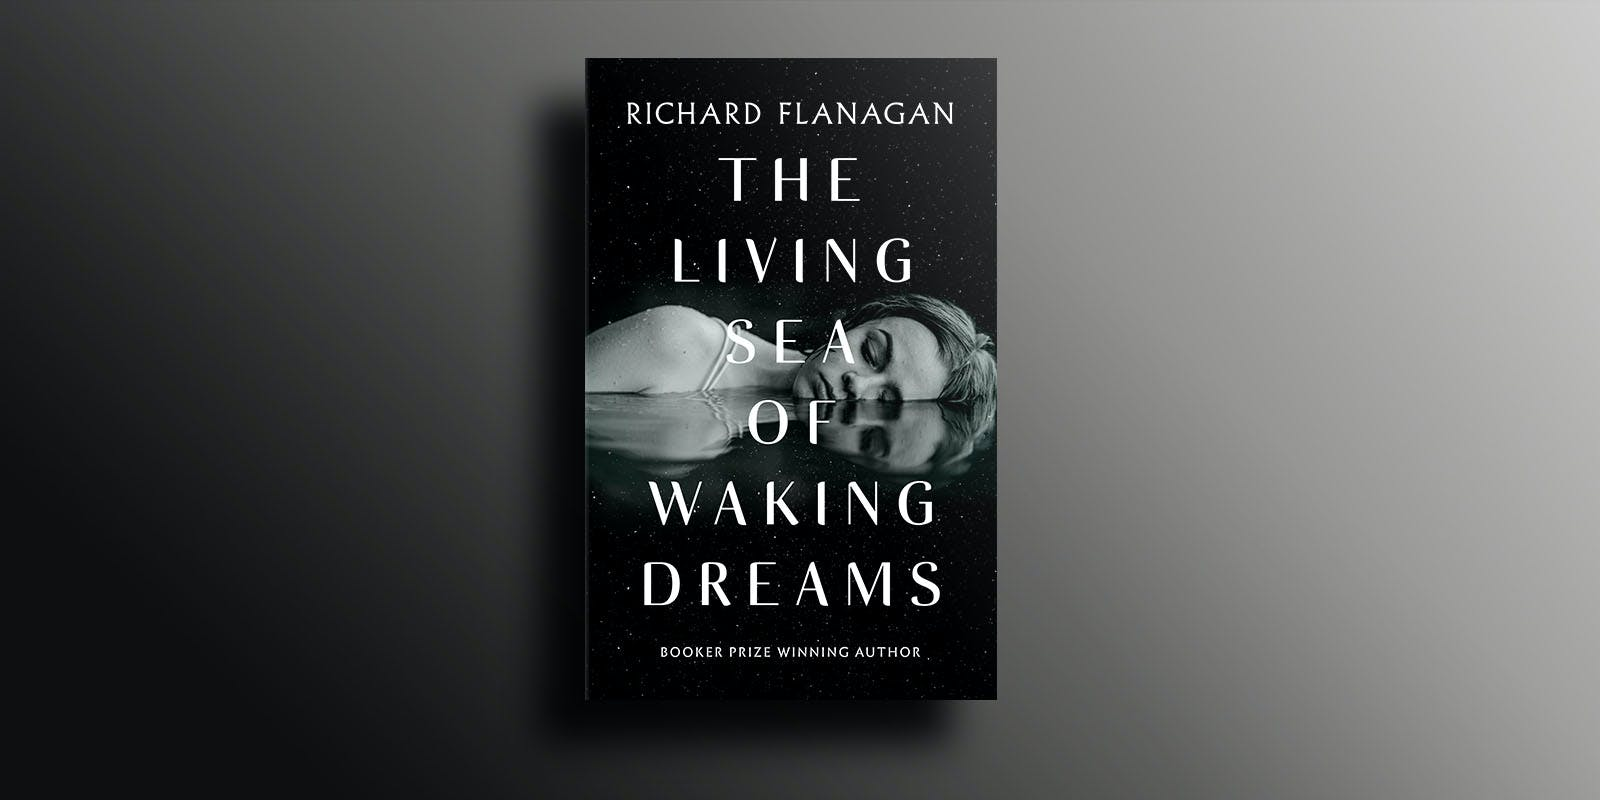 New Richard Flanagan novel this October